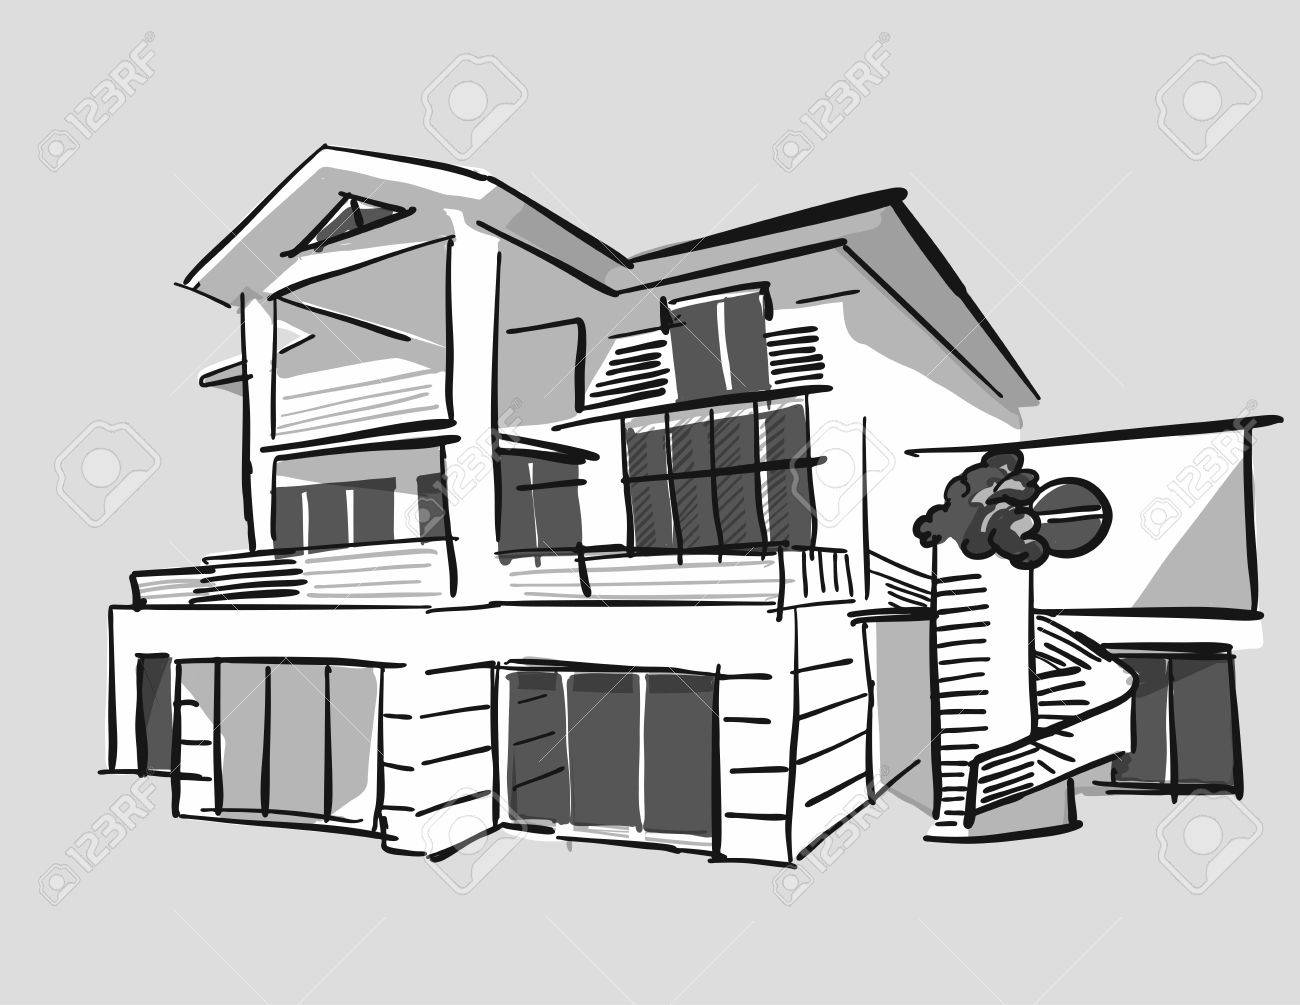 Grayscale Drawing Dream House Hand Drawn Vector Outline Black Pen On White Ground Stock